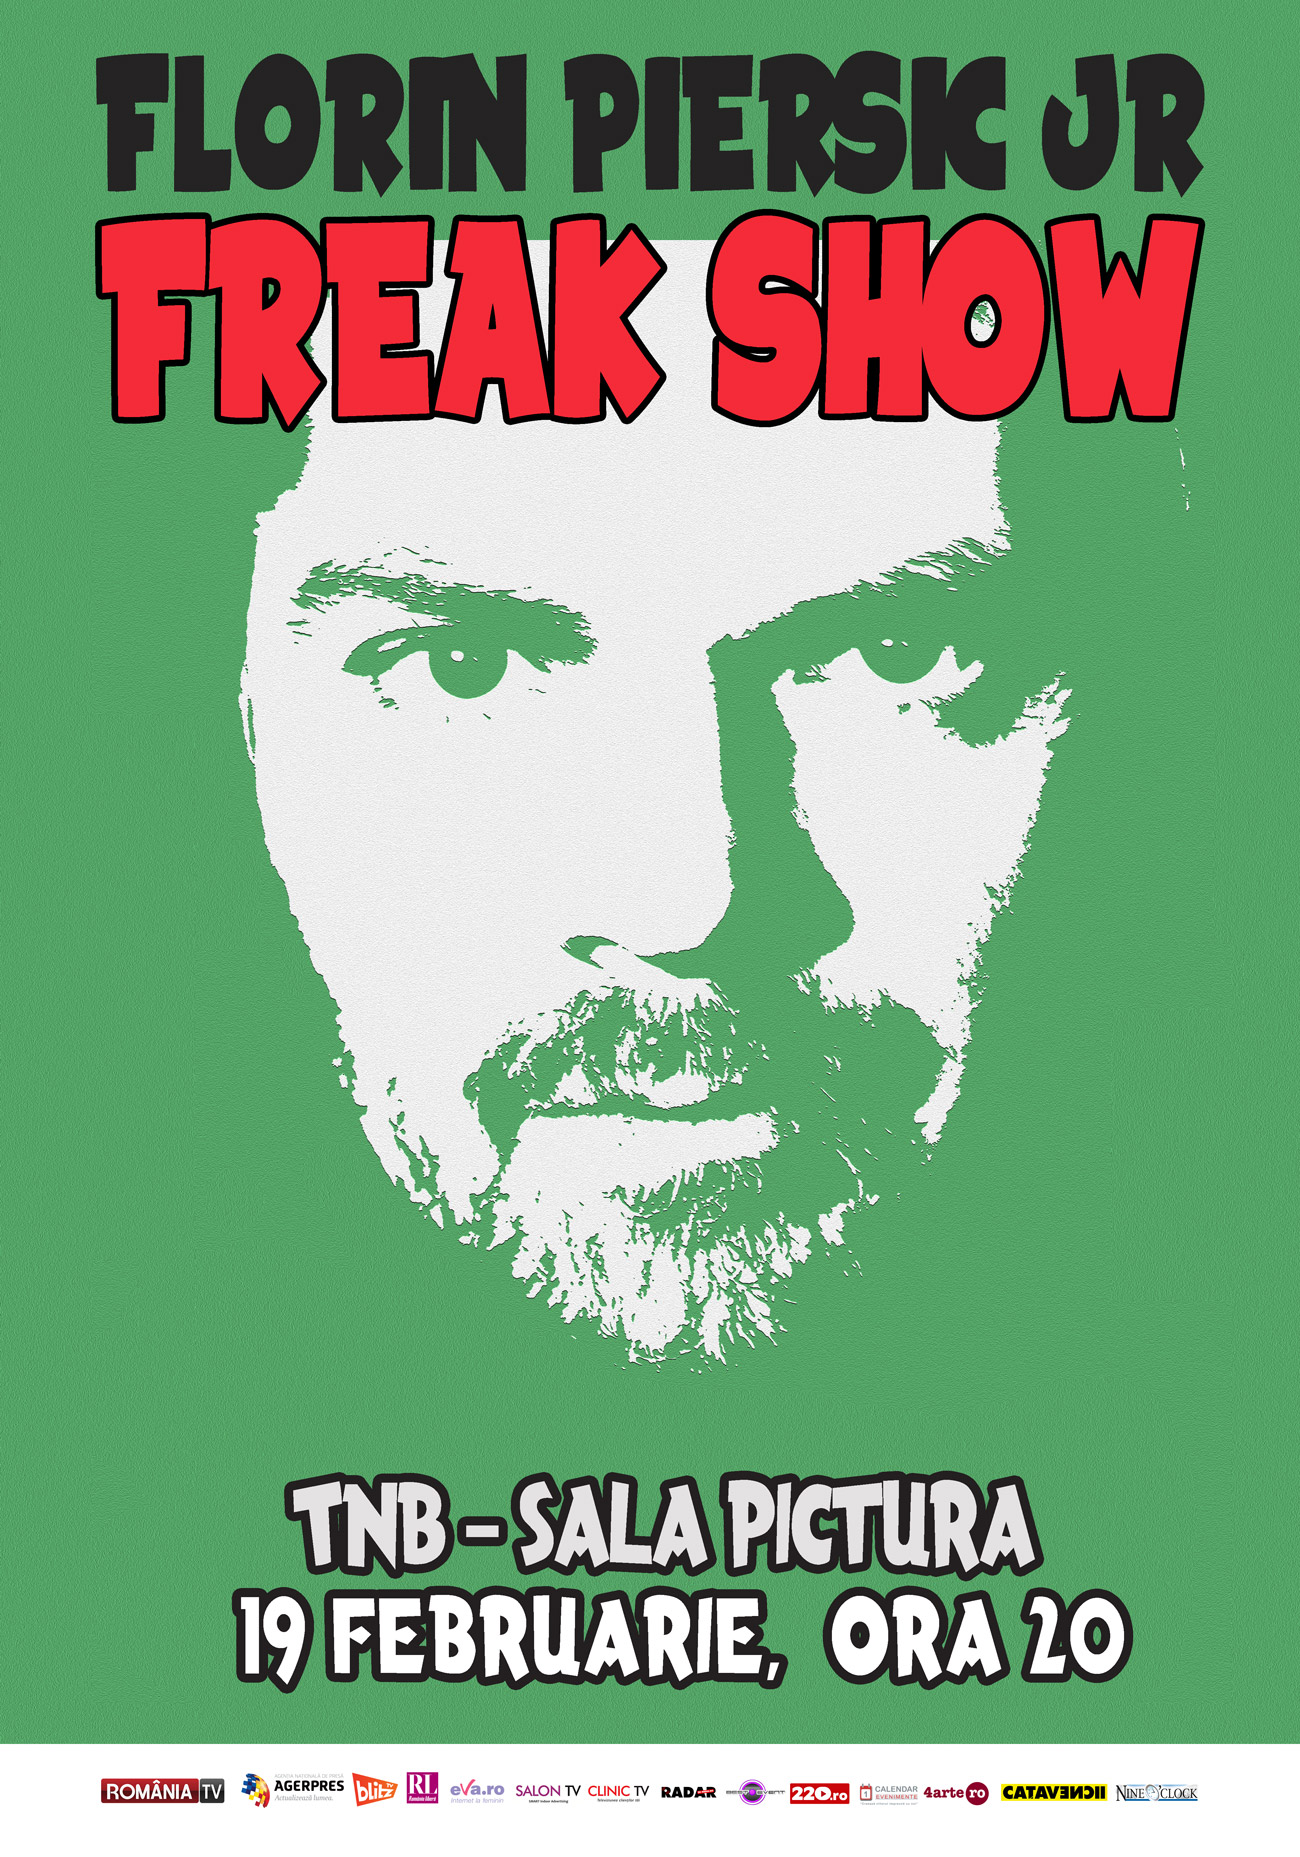 Florin Piersic jr. - Freak Show Xmas Edition